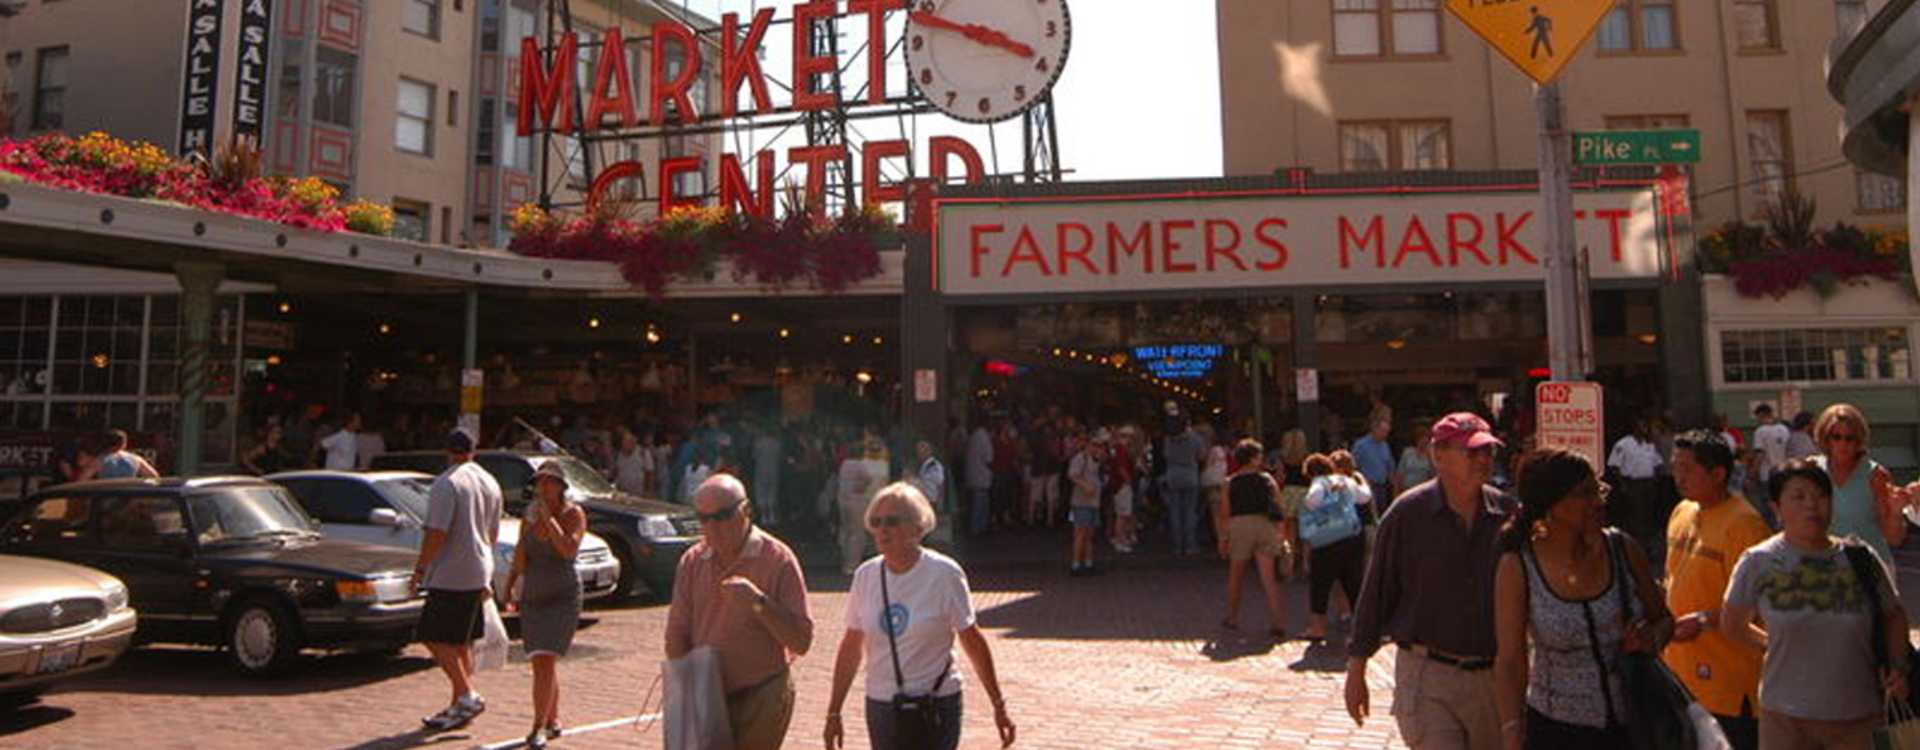 Pike_Place_Market-4.JPG